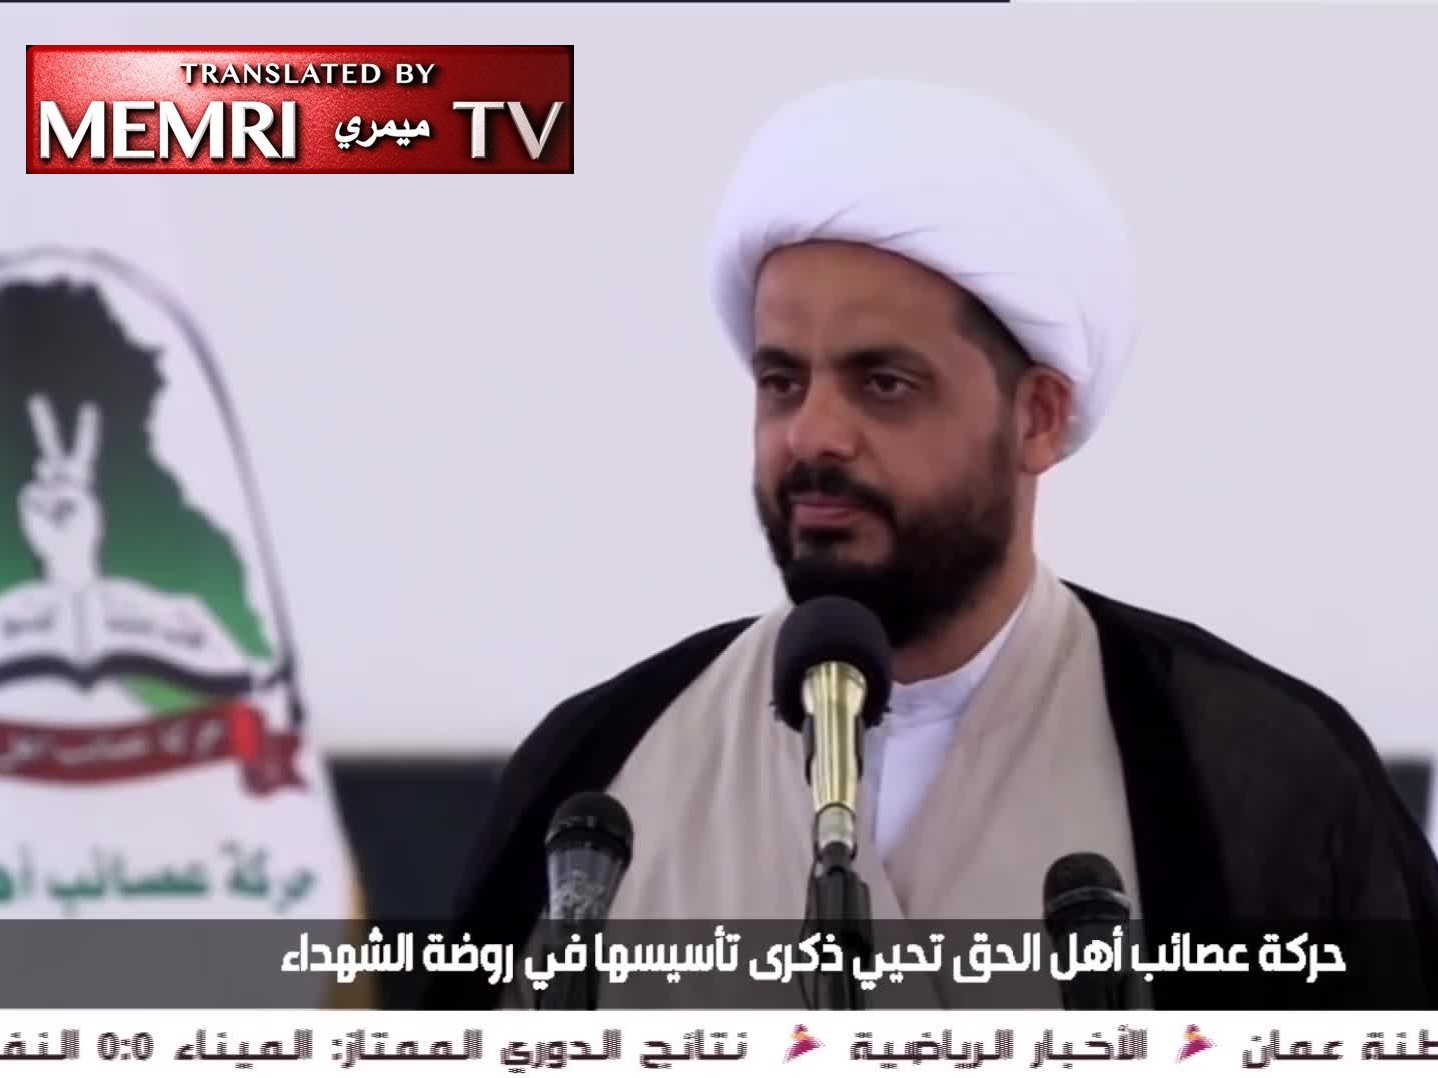 Shi'ite Iraqi Militia Leader Qais Al-Khazali: ISIS Was Part of A Zionist-American Plan to Conquer Iraq